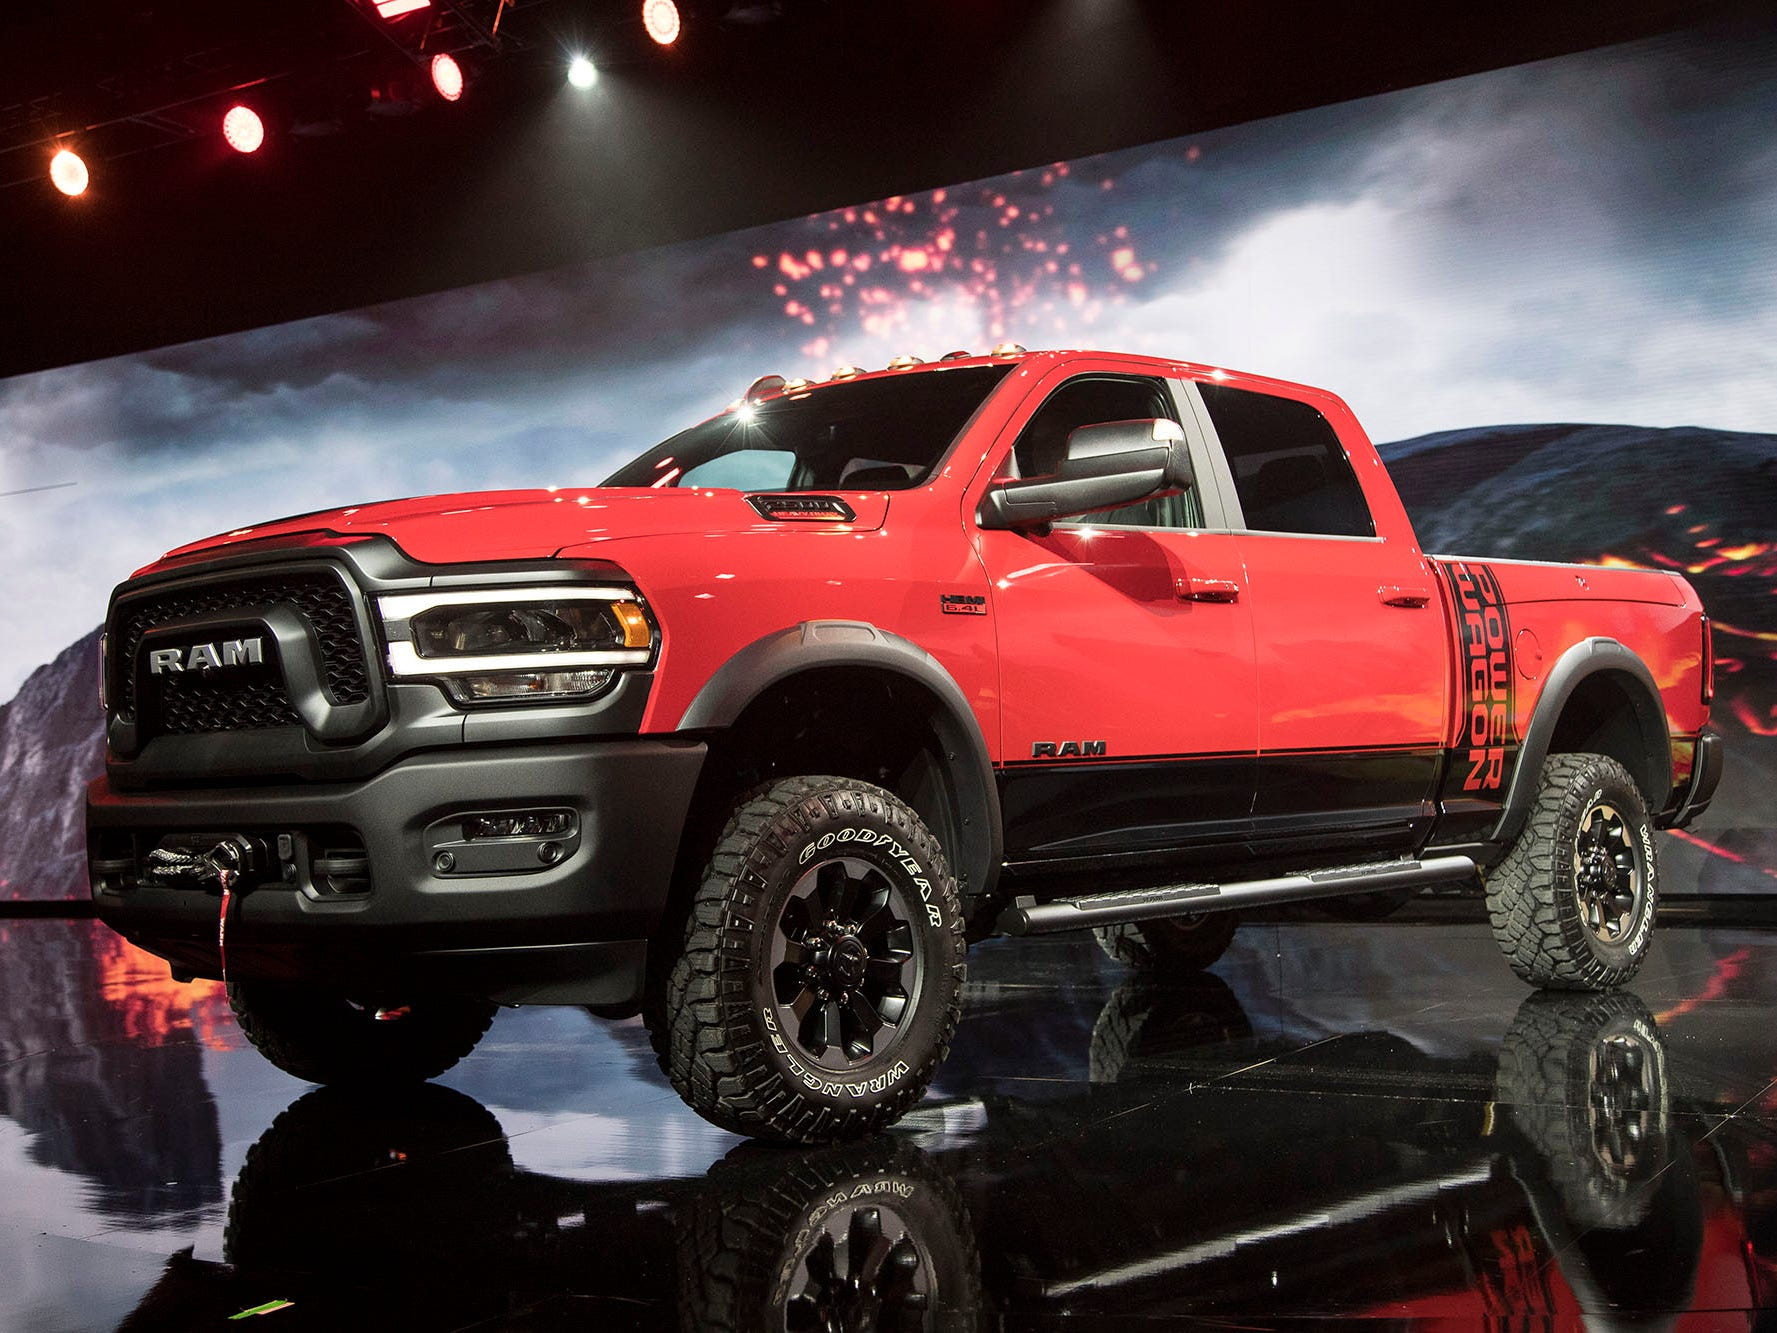 Ram debuts the 2019 2500 Power Wagon truck.